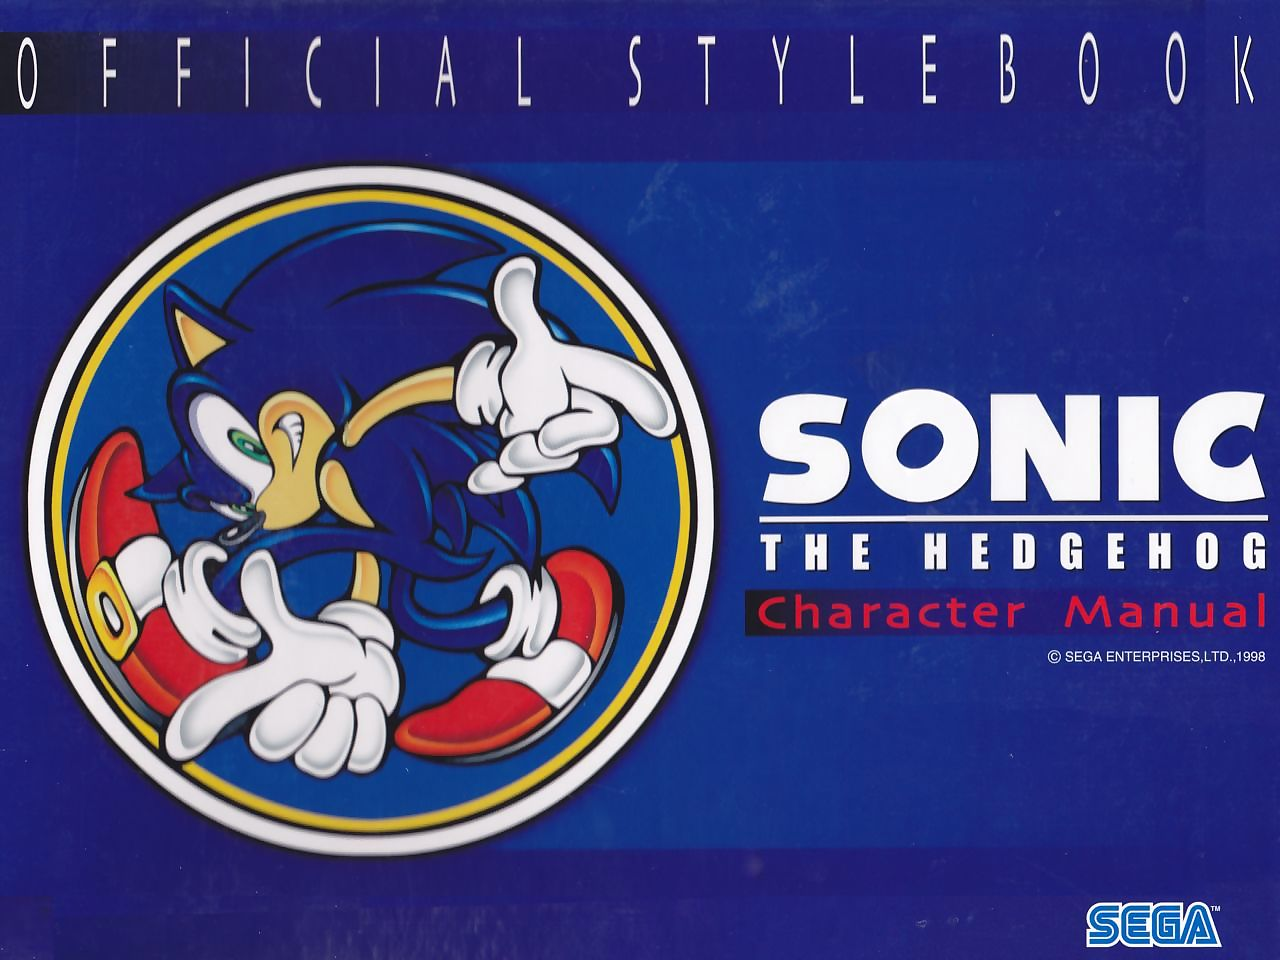 Sonic Try one\'s luck Stylebook